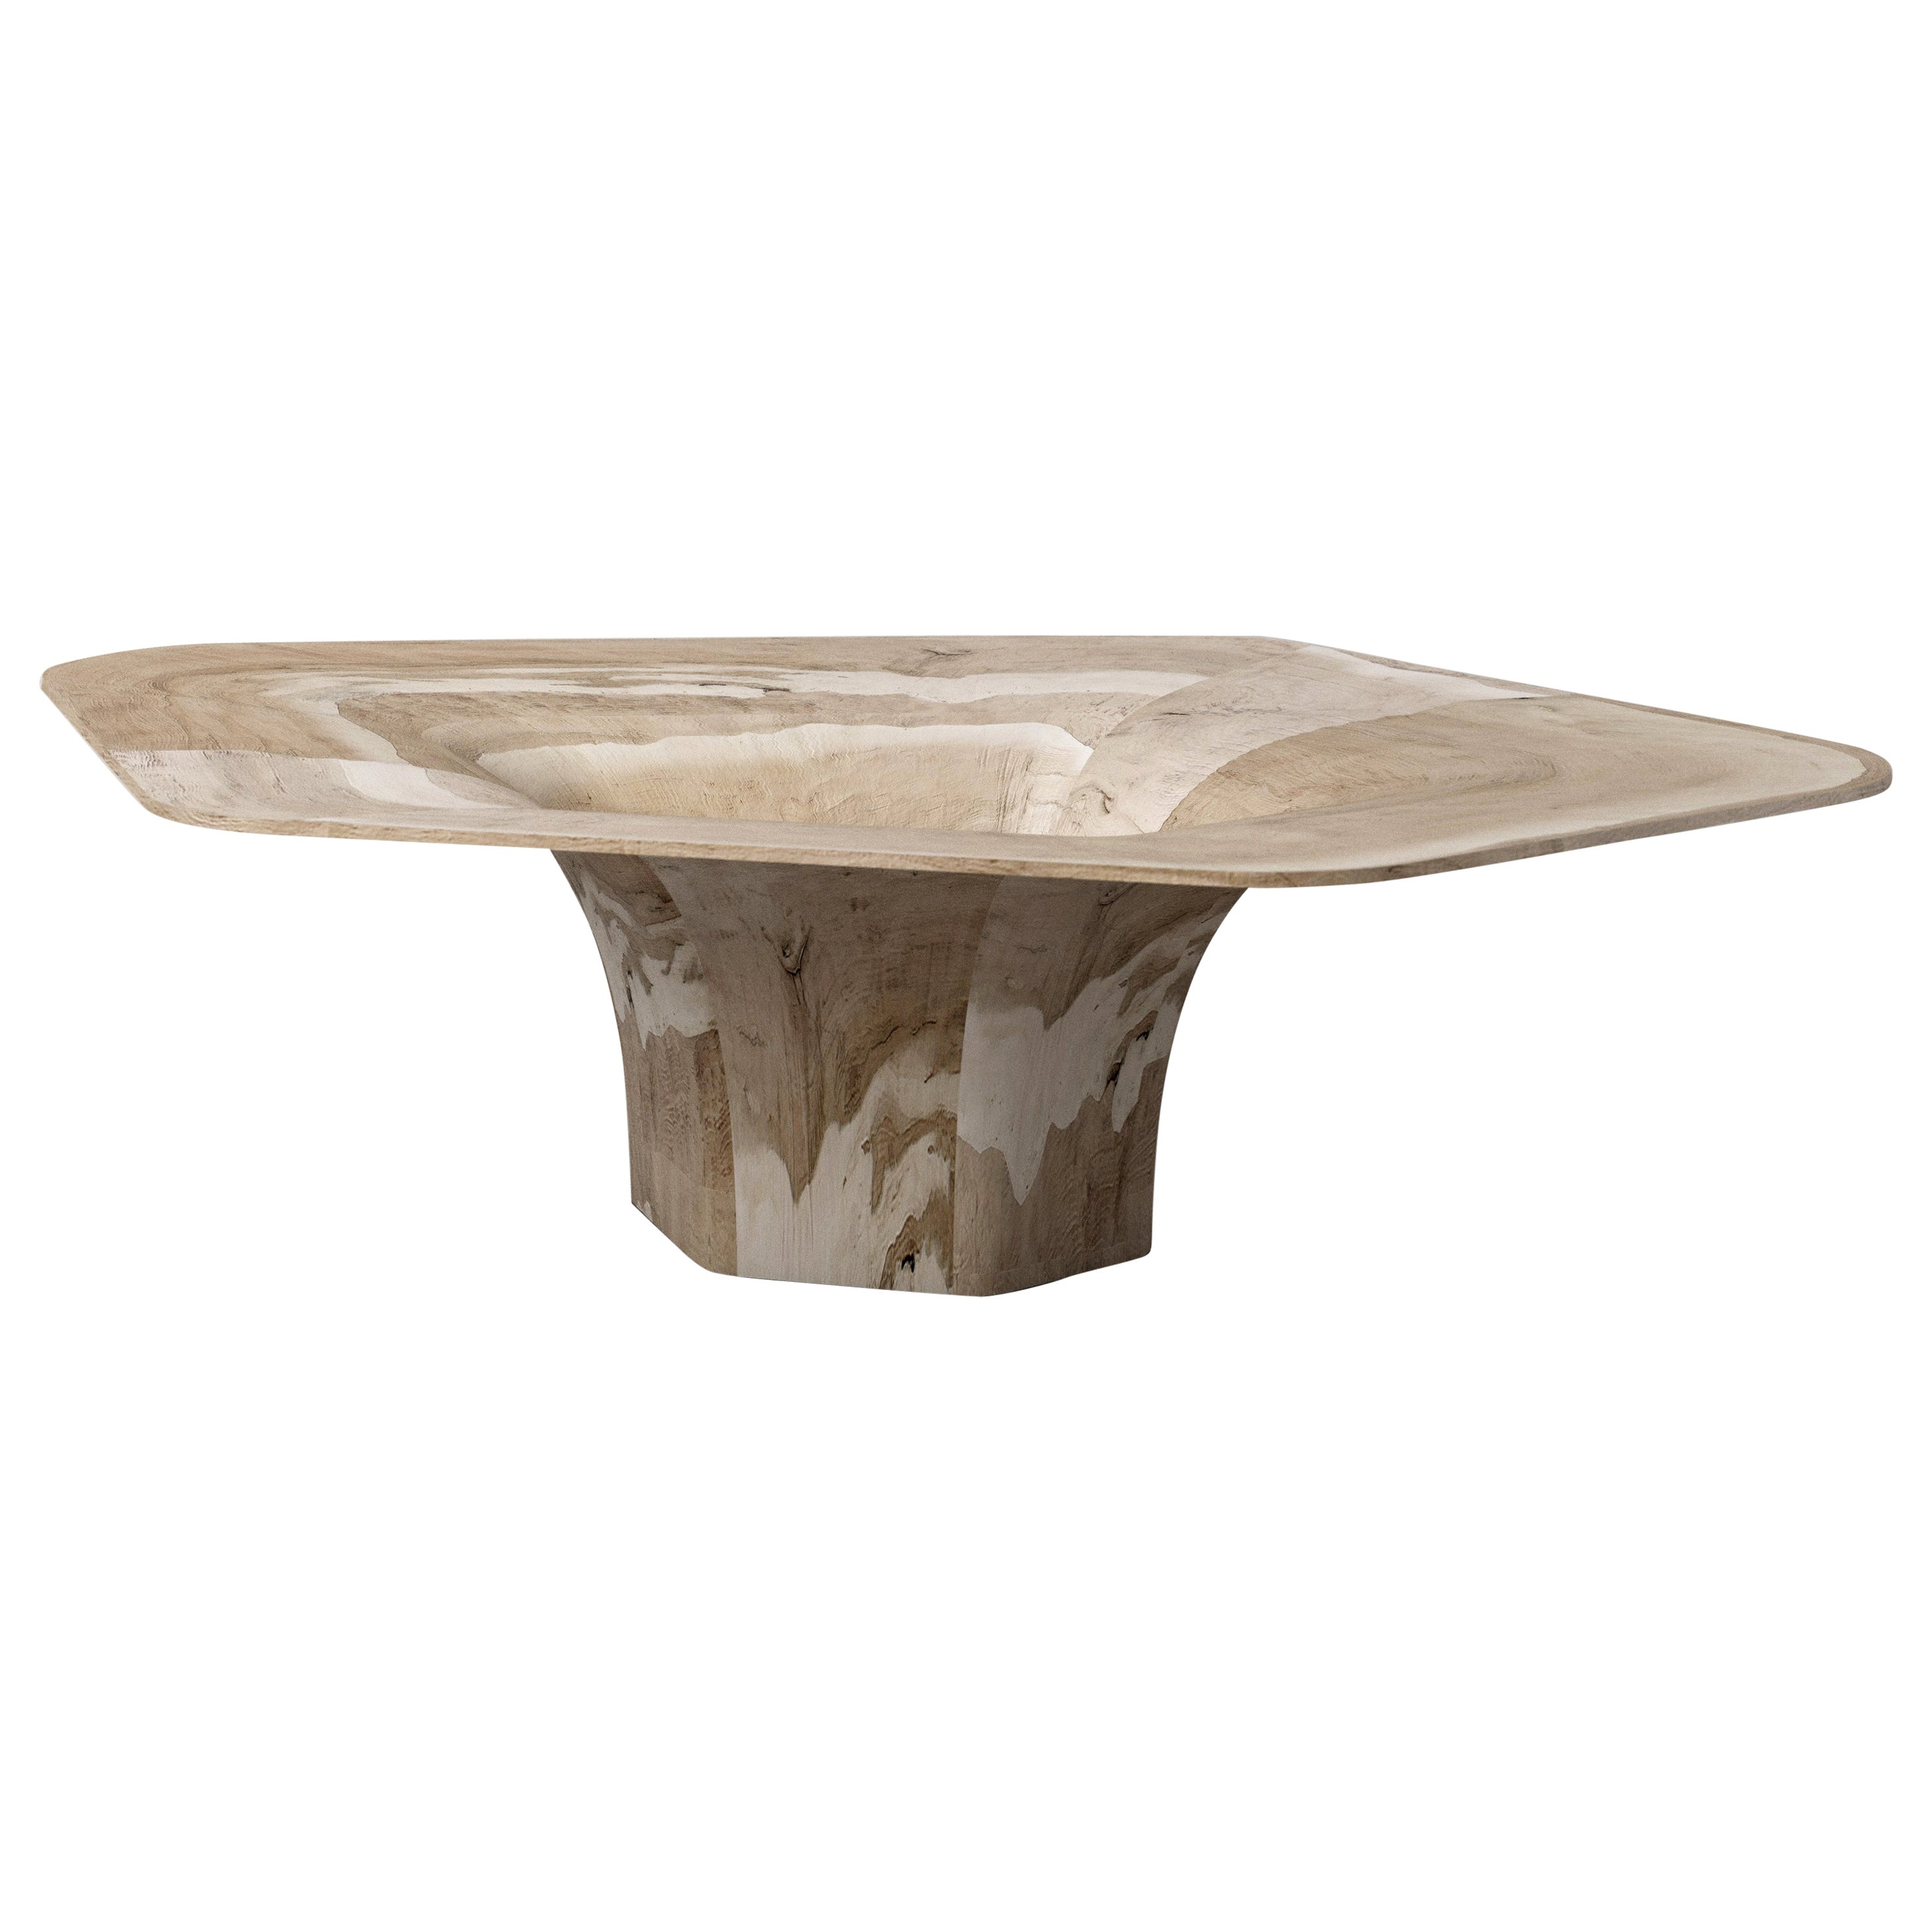 Sculptural Dune Coffee Table by Pietro Franceschini